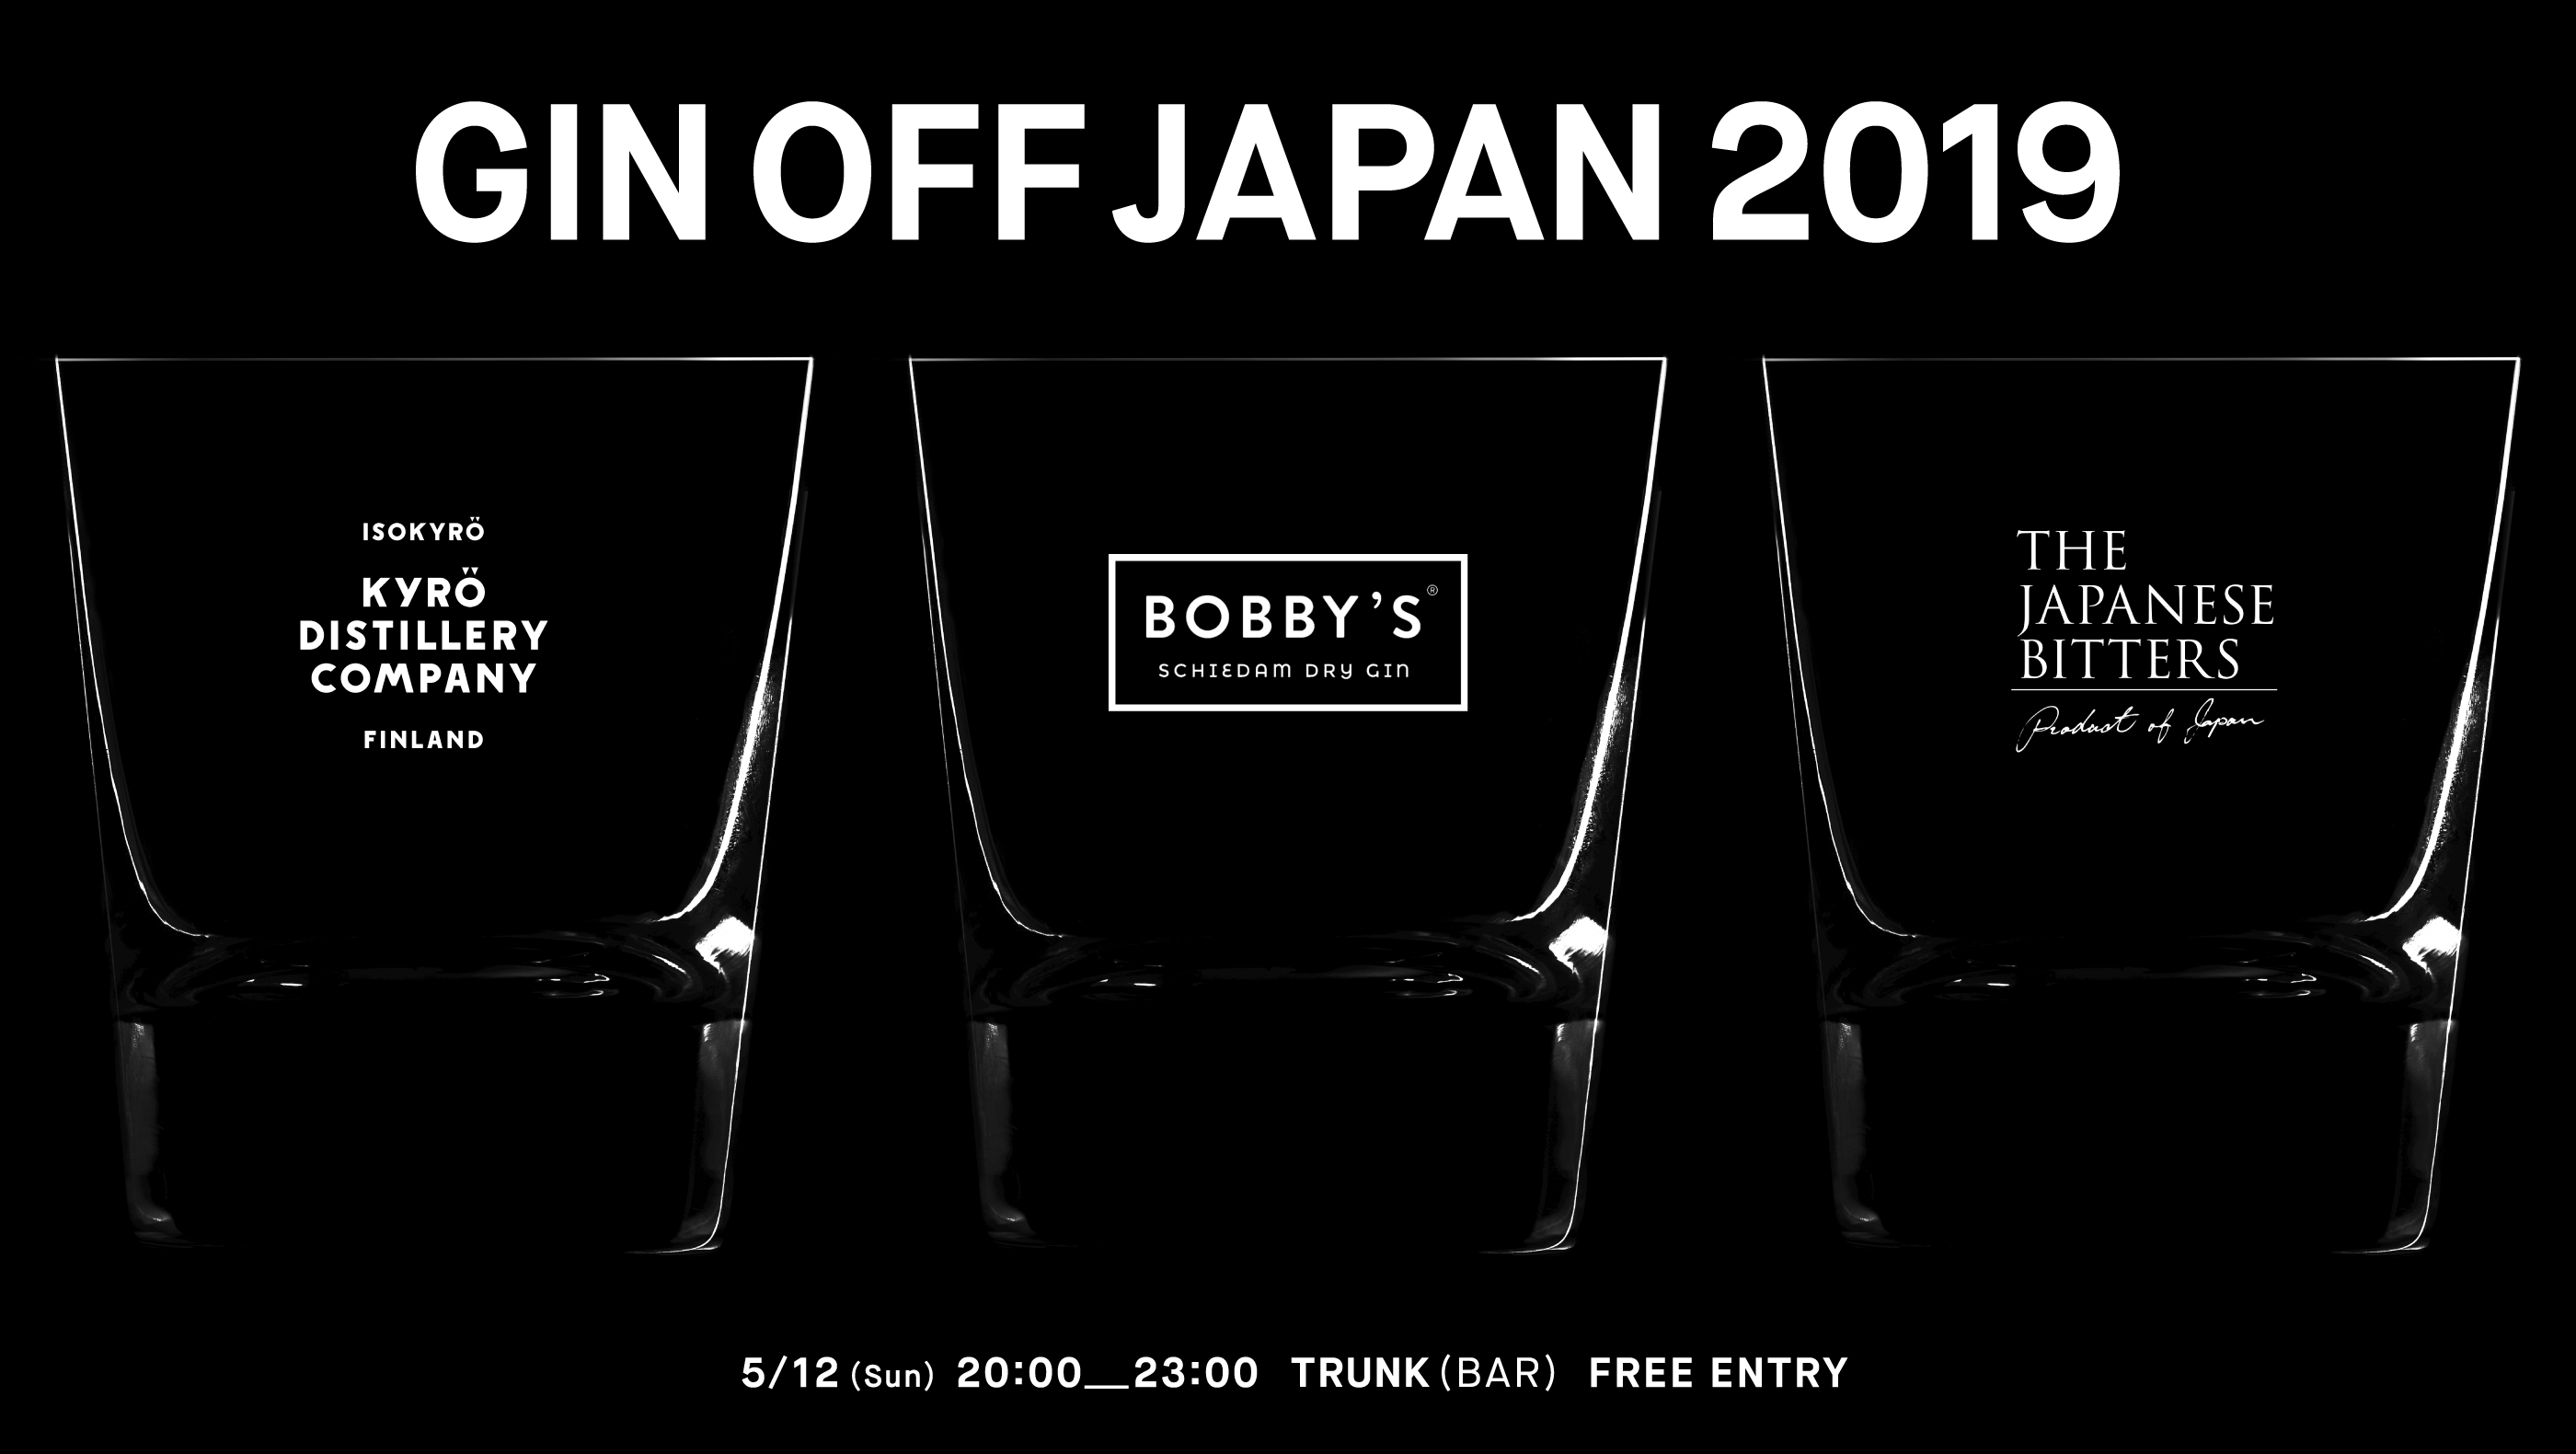 GIN OFF JAPAN 2019